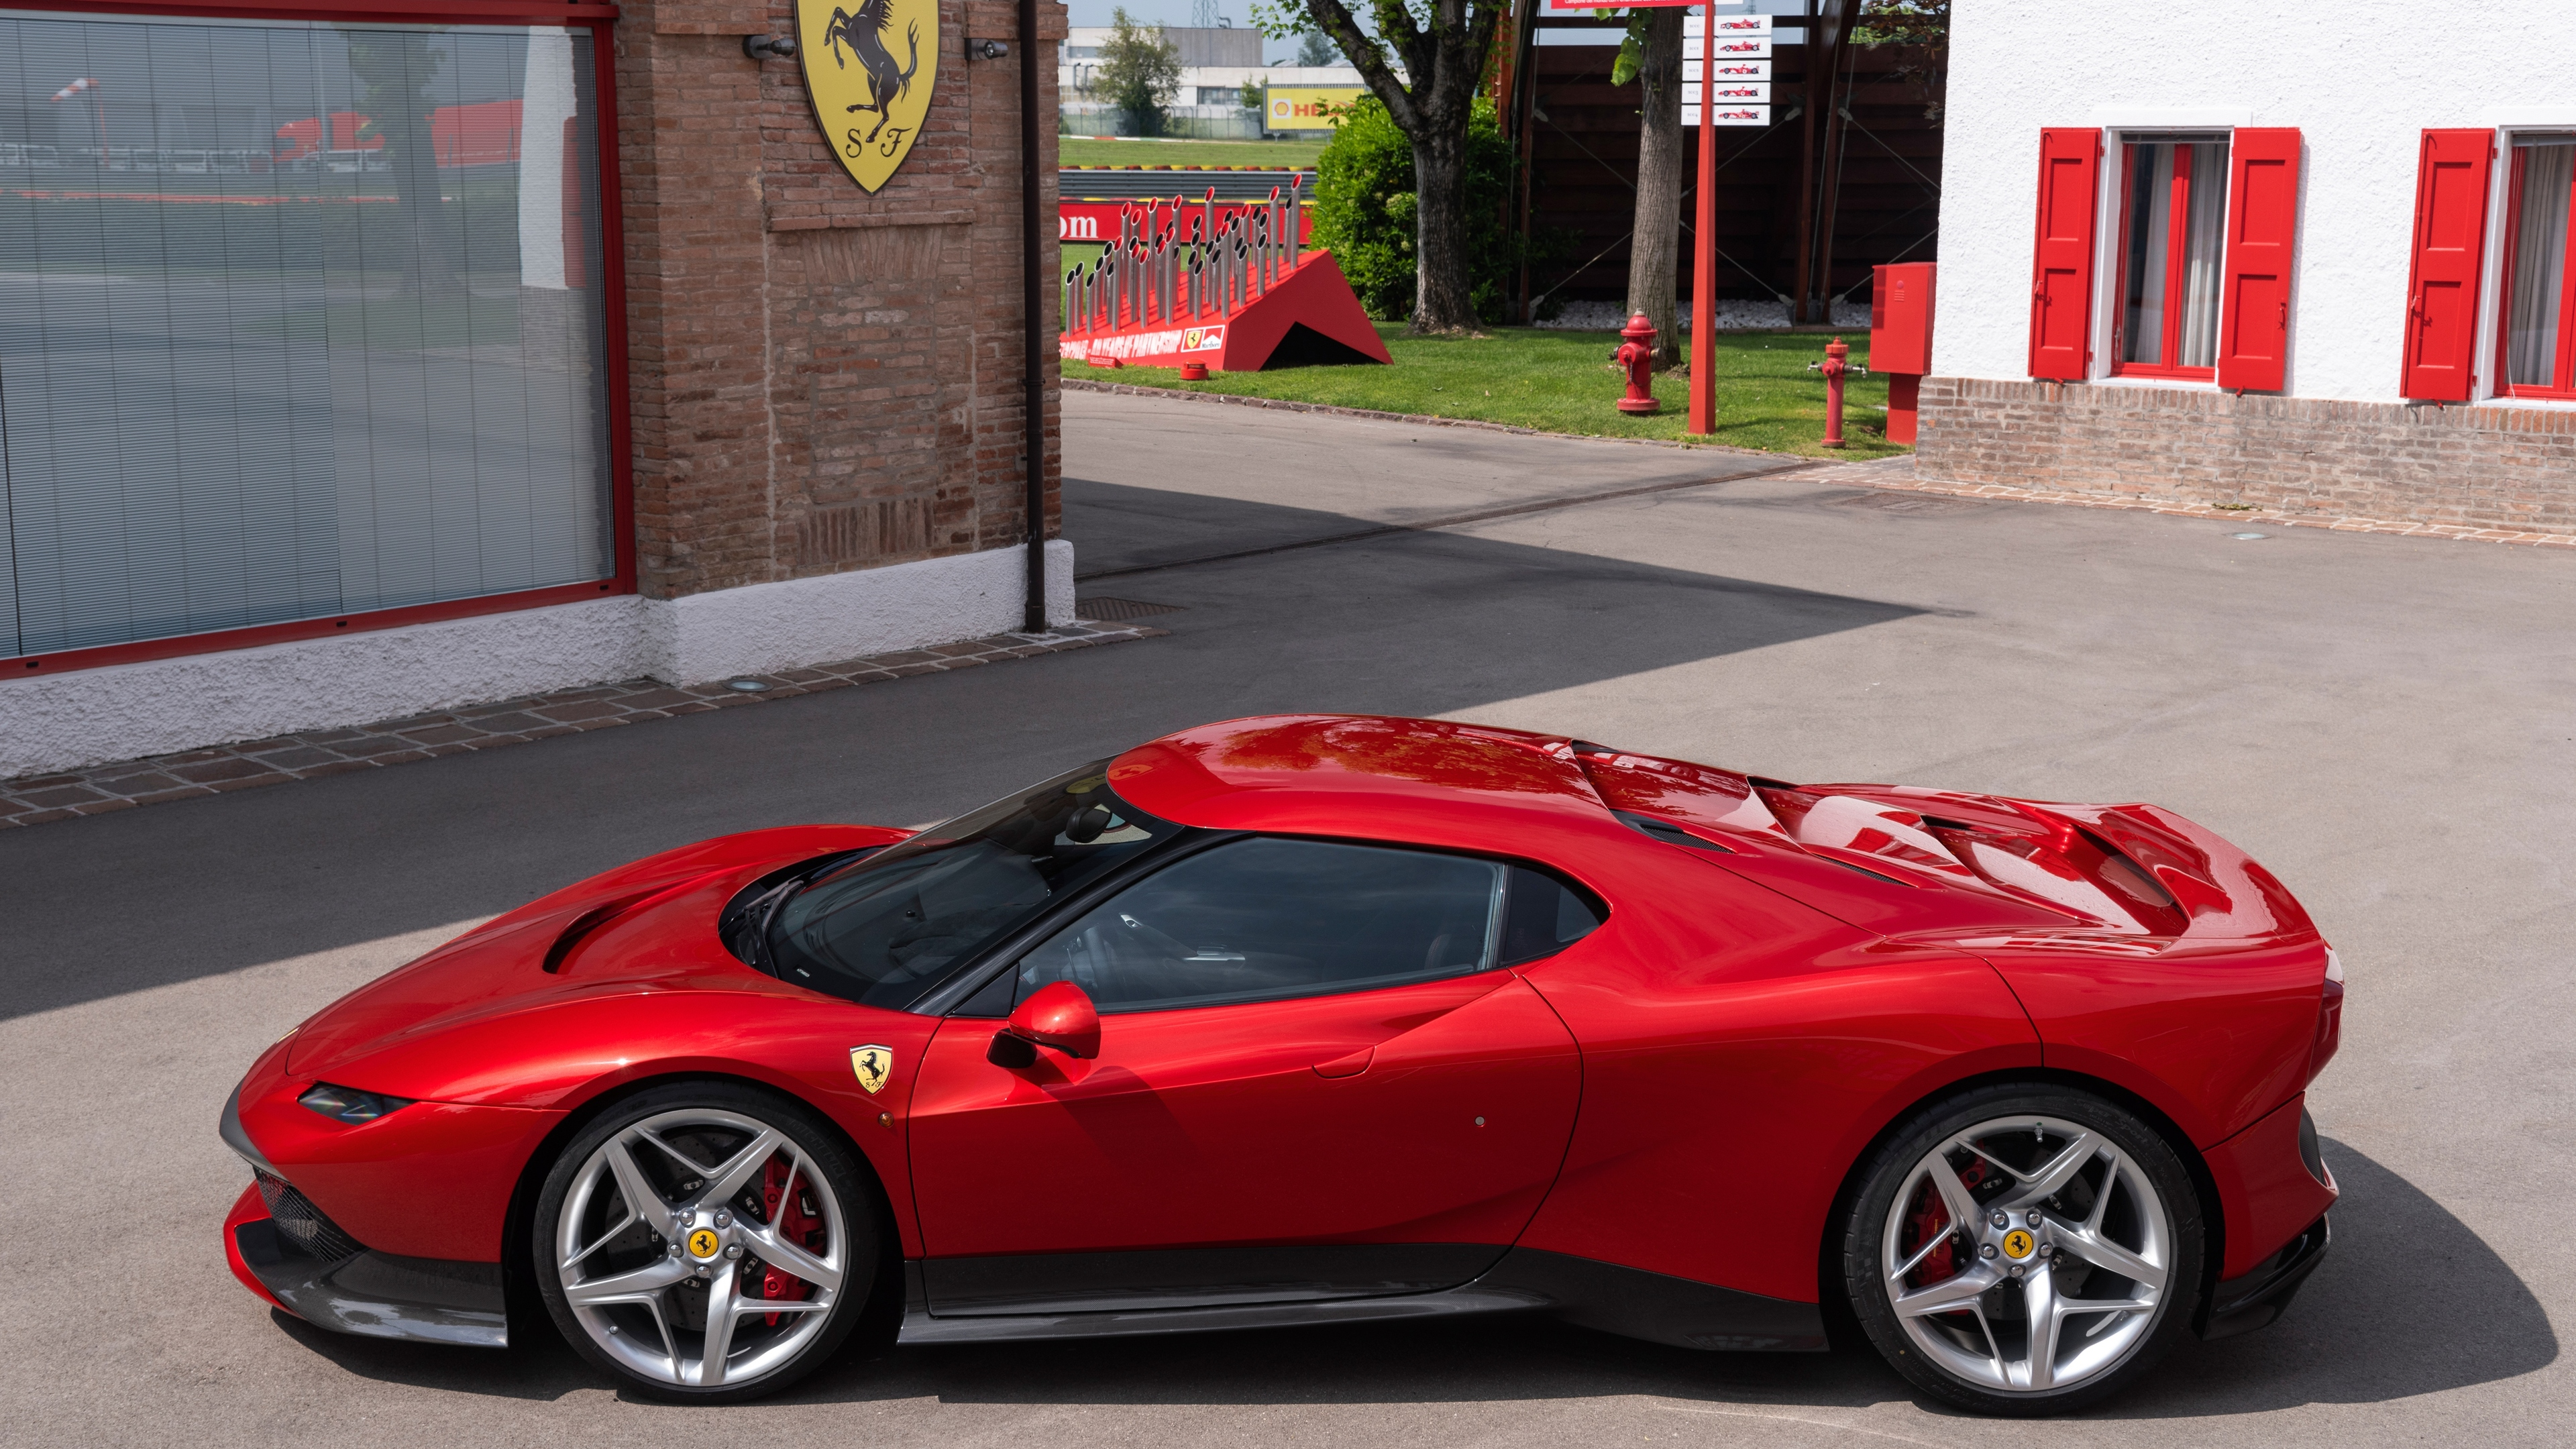 ferrari sp38 side view 4k 1539111422 - Ferrari SP38 Side View 4k - hd-wallpapers, ferrari wallpapers, ferrari sp38 wallpapers, cars wallpapers, 4k-wallpapers, 2018 cars wallpapers